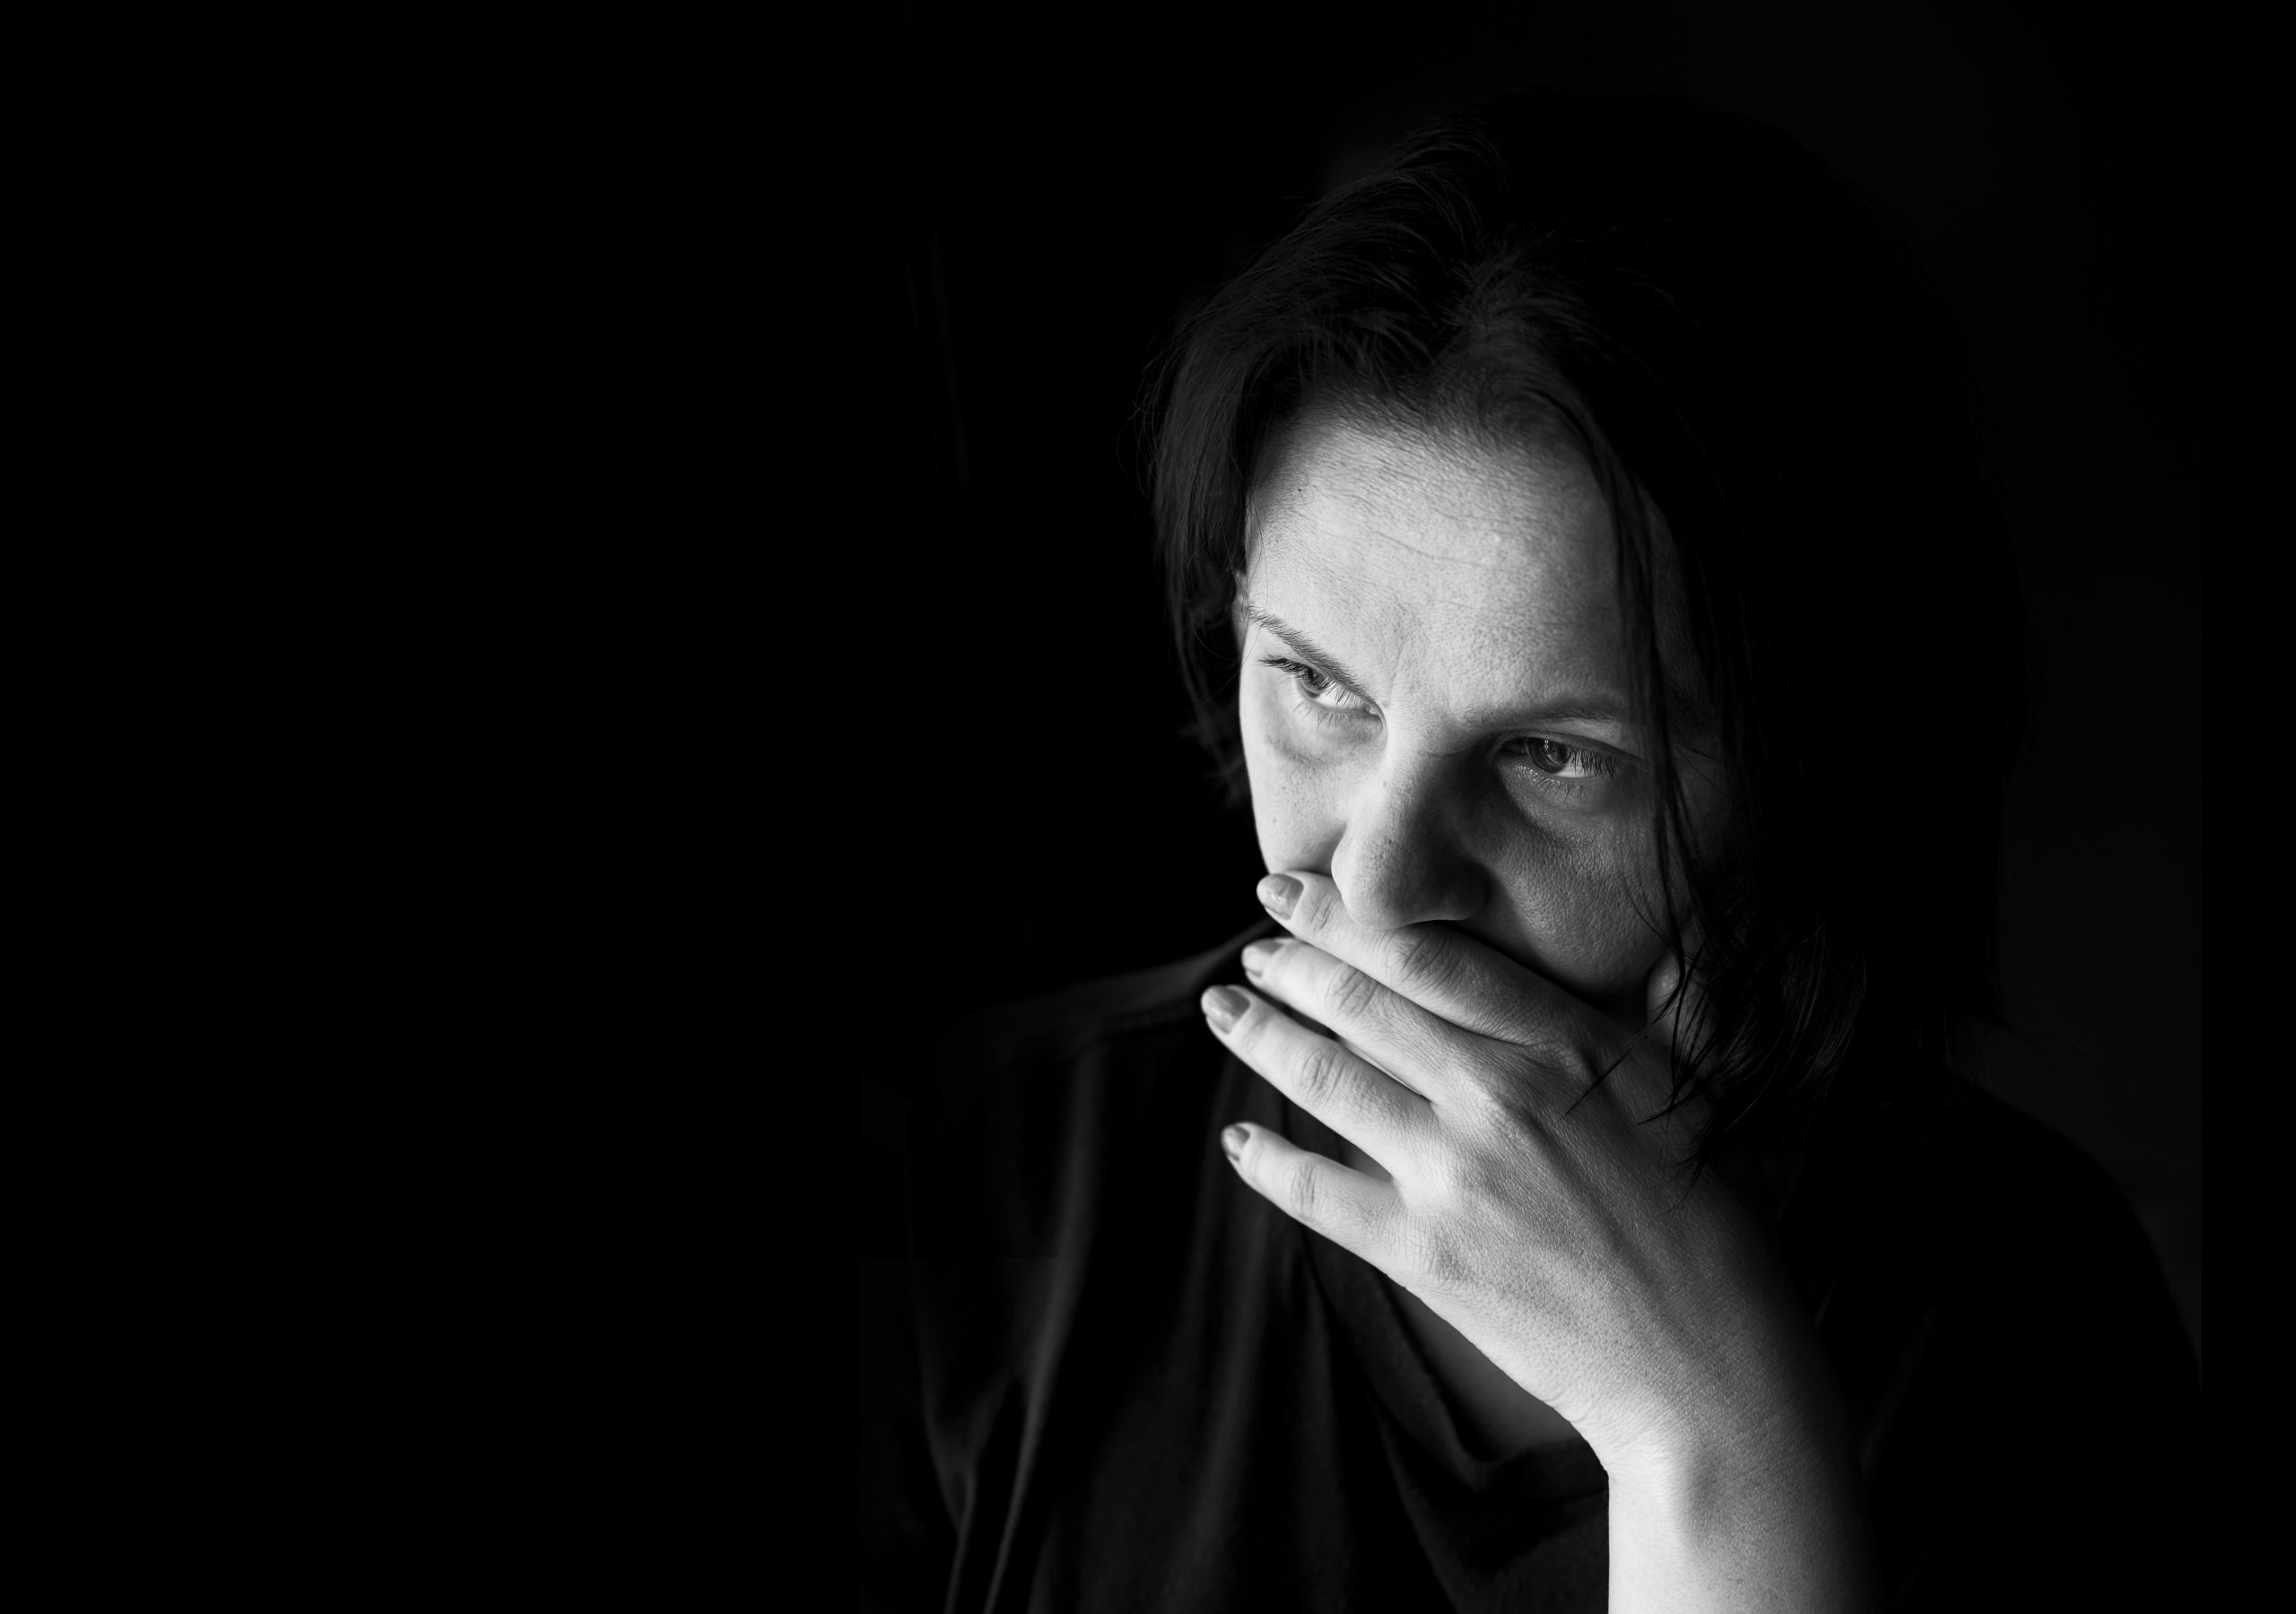 Greyscale photo of a woman with her hand to her mouth sitting in the dark.